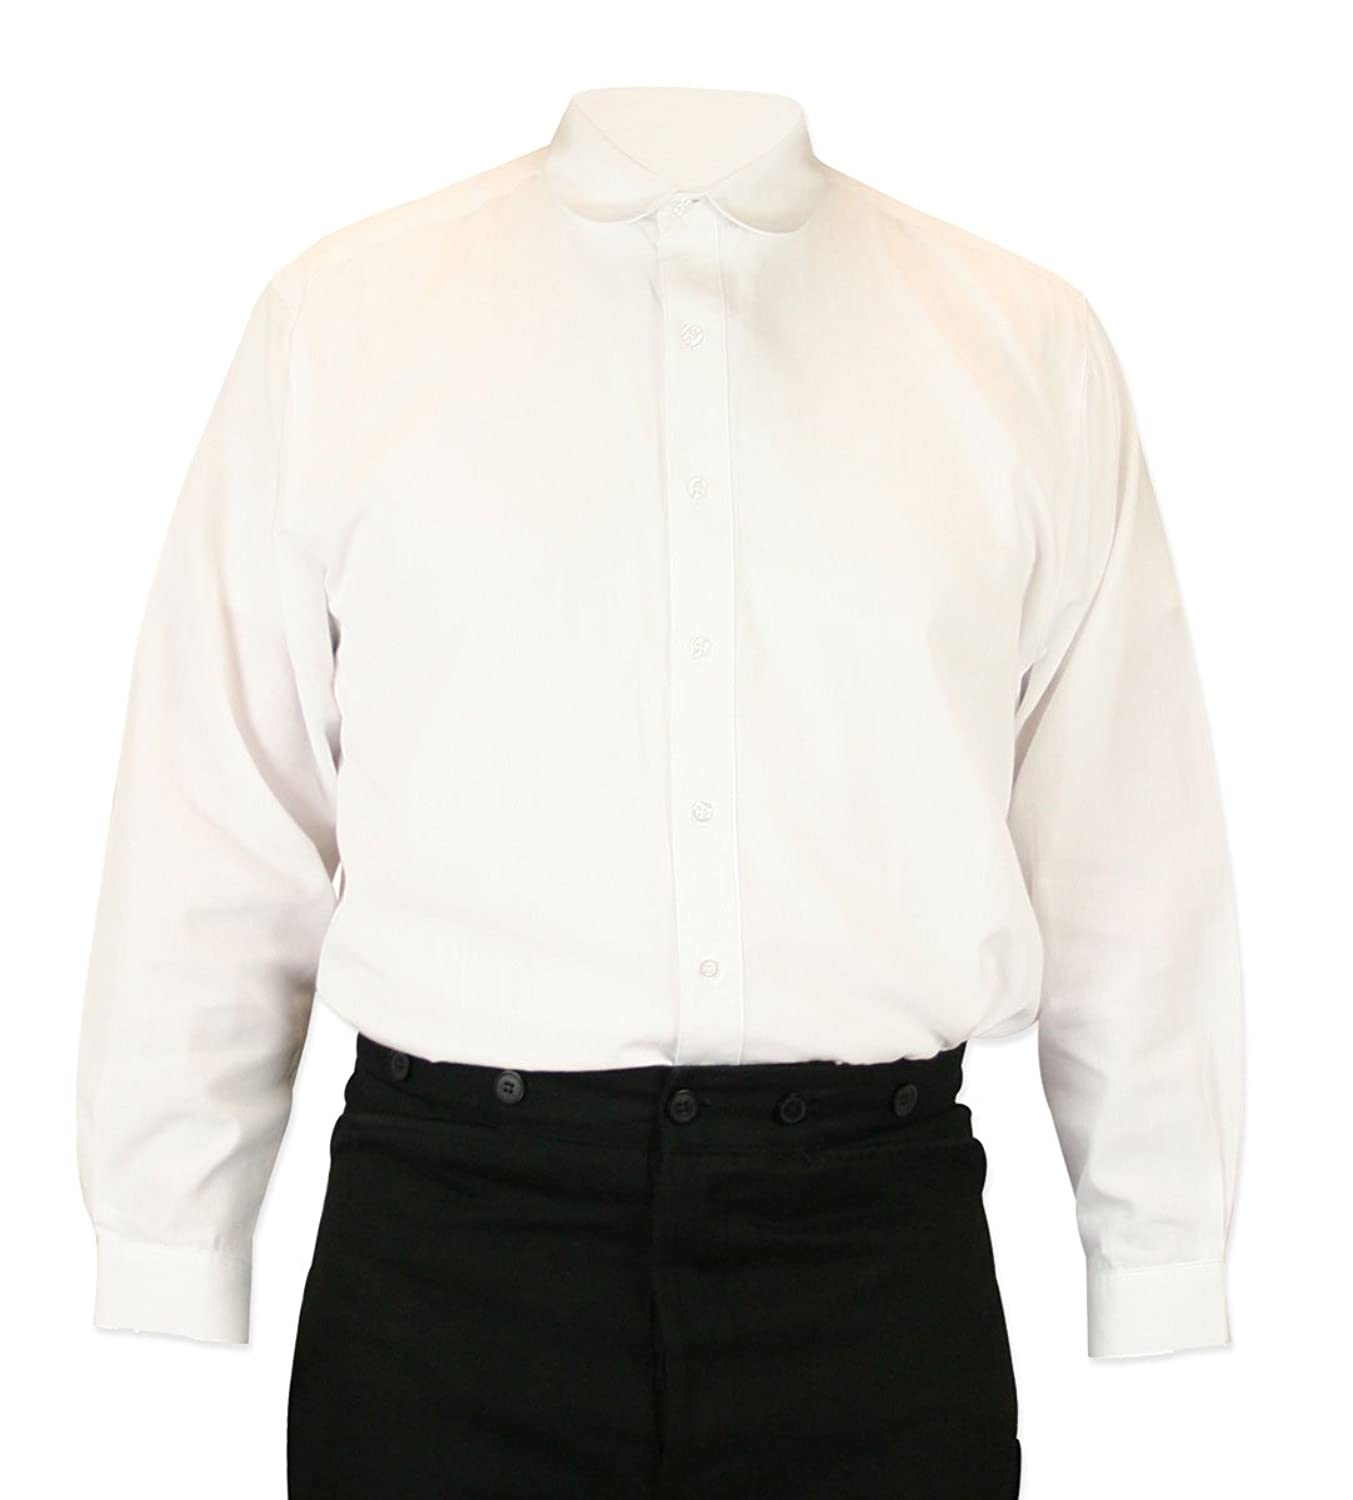 1919 Clothing: Mr. Selfridge Costumes Season 3 Virgil Club Collar Dress Shirt $59.95 AT vintagedancer.com